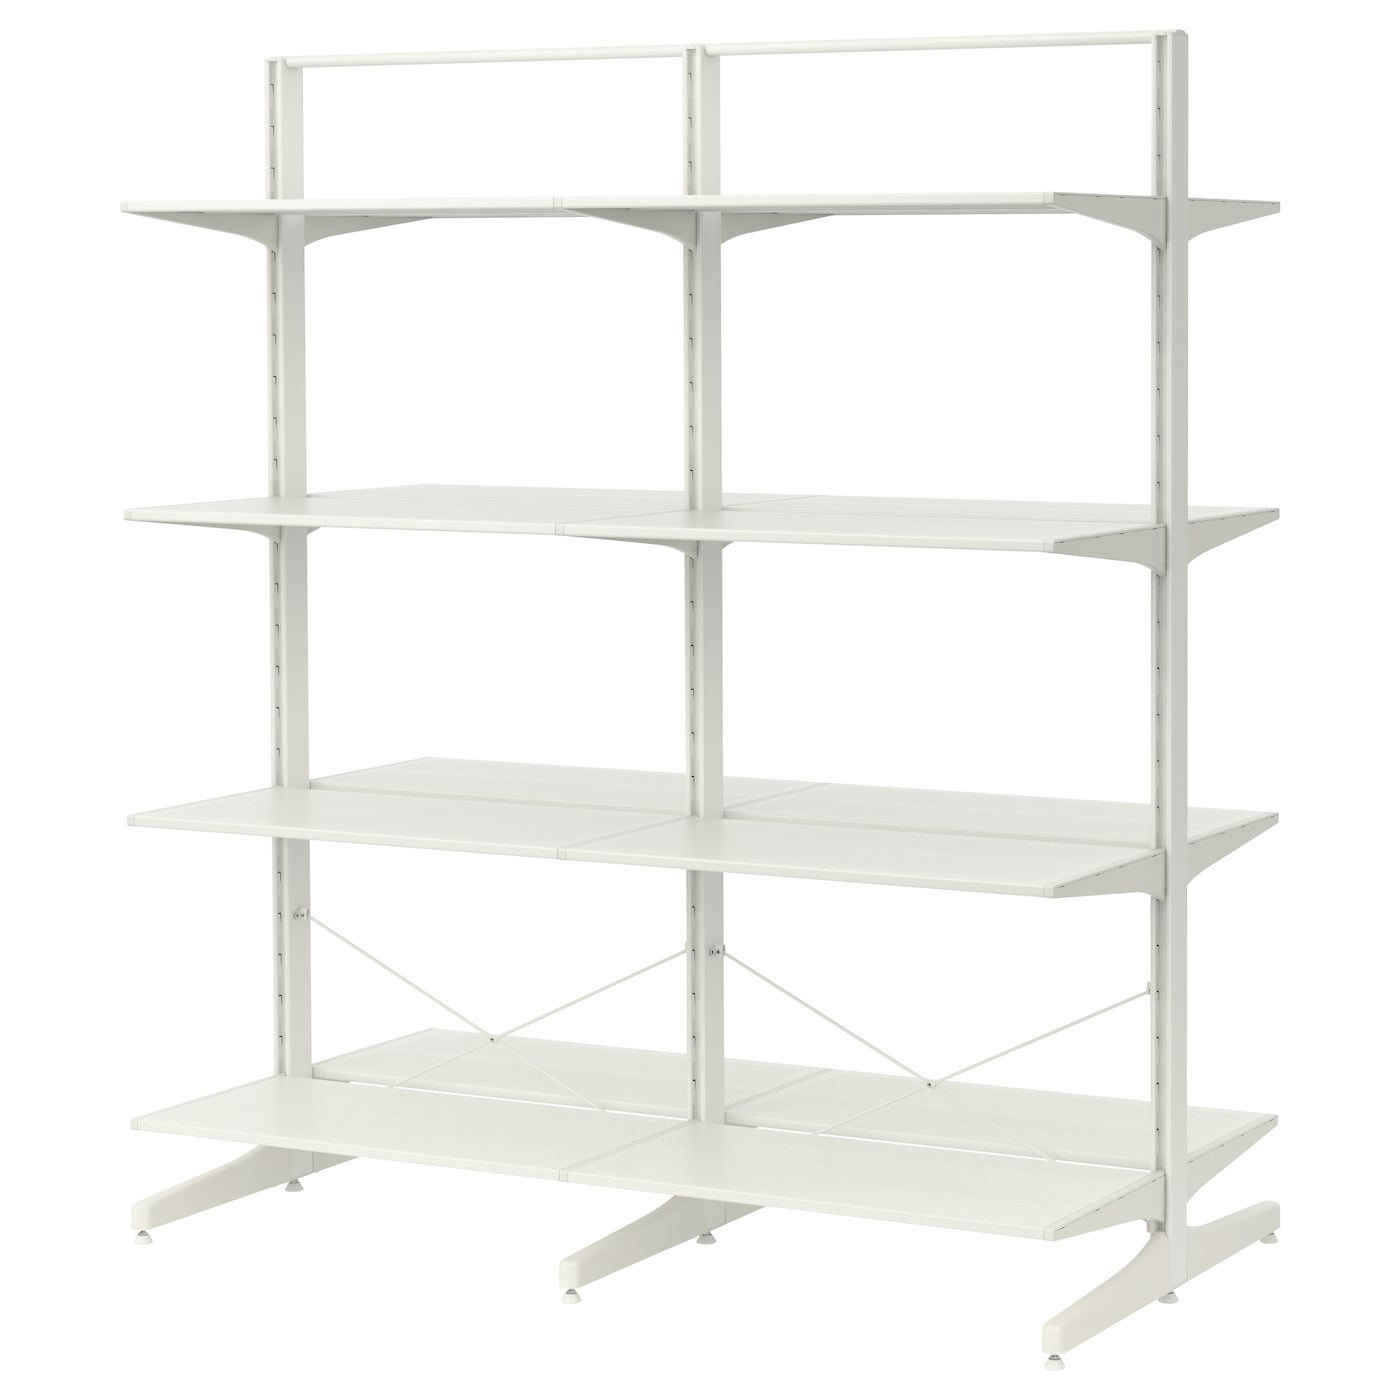 algot post foot shelves metal white 167x83x194 cm ikea. Black Bedroom Furniture Sets. Home Design Ideas